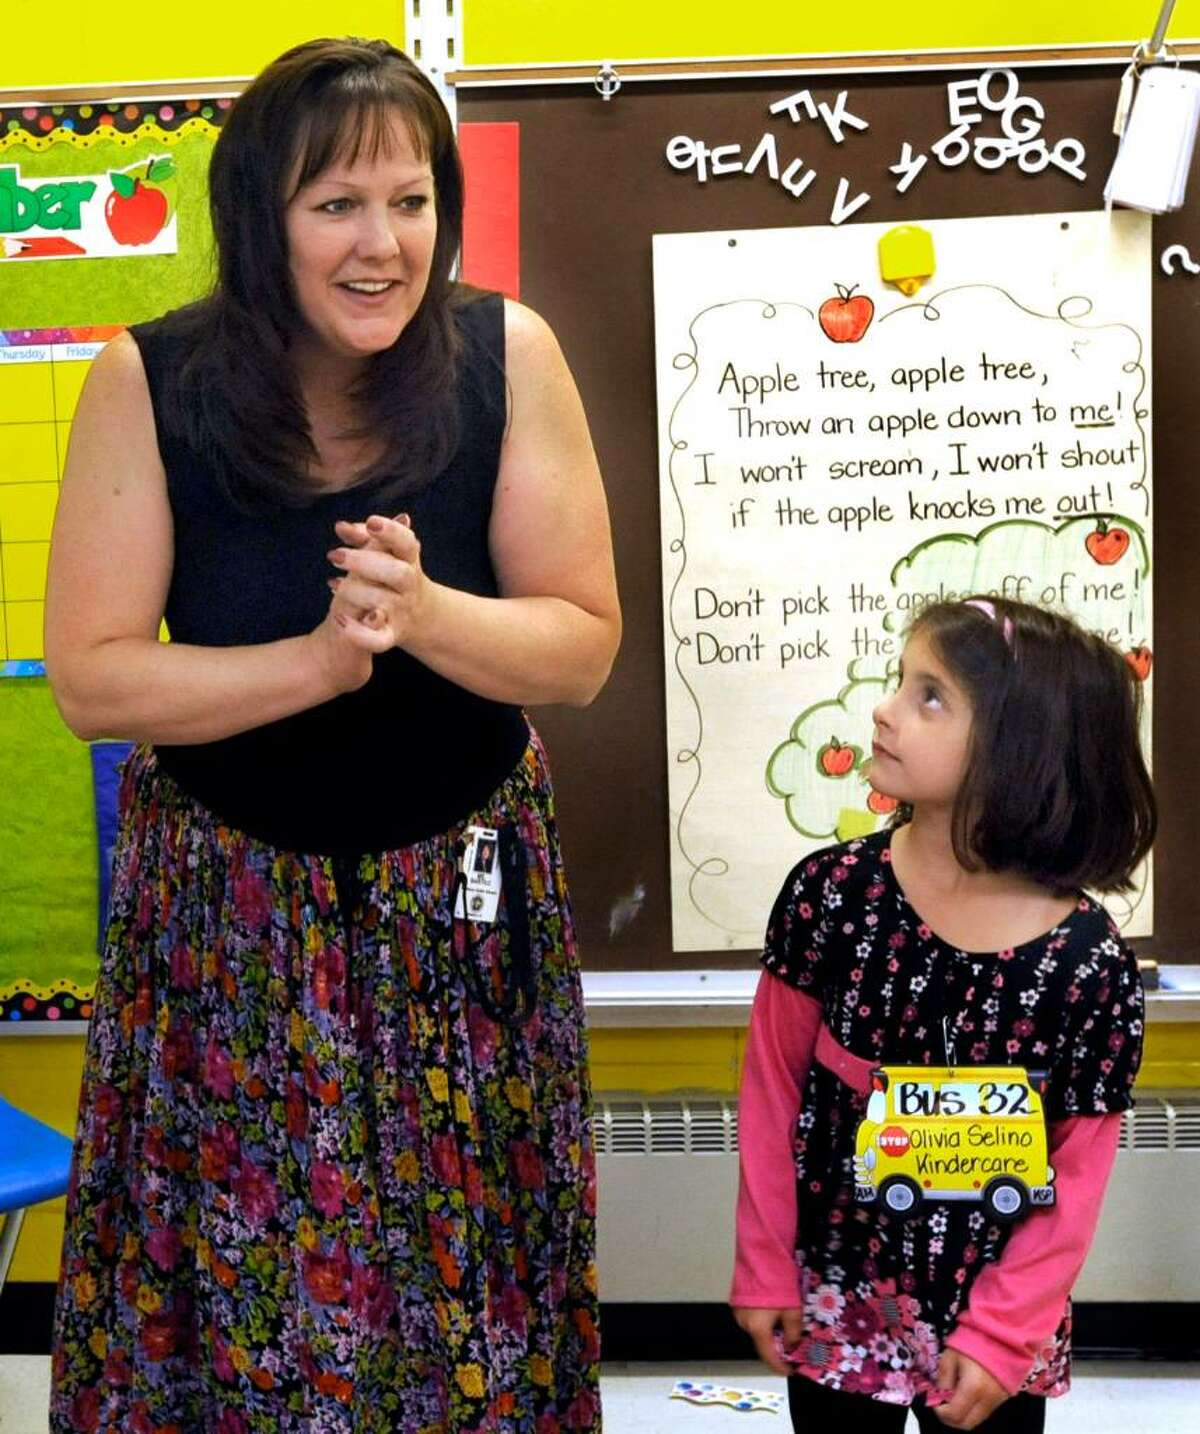 Kindergarten teacher Charlene Bartko, whose birthday coincides with the first day of school, greets her class at King Street Primary School in Danbury on Sept. 3, 2009. Olivia Selino, right, pays rapt attention.